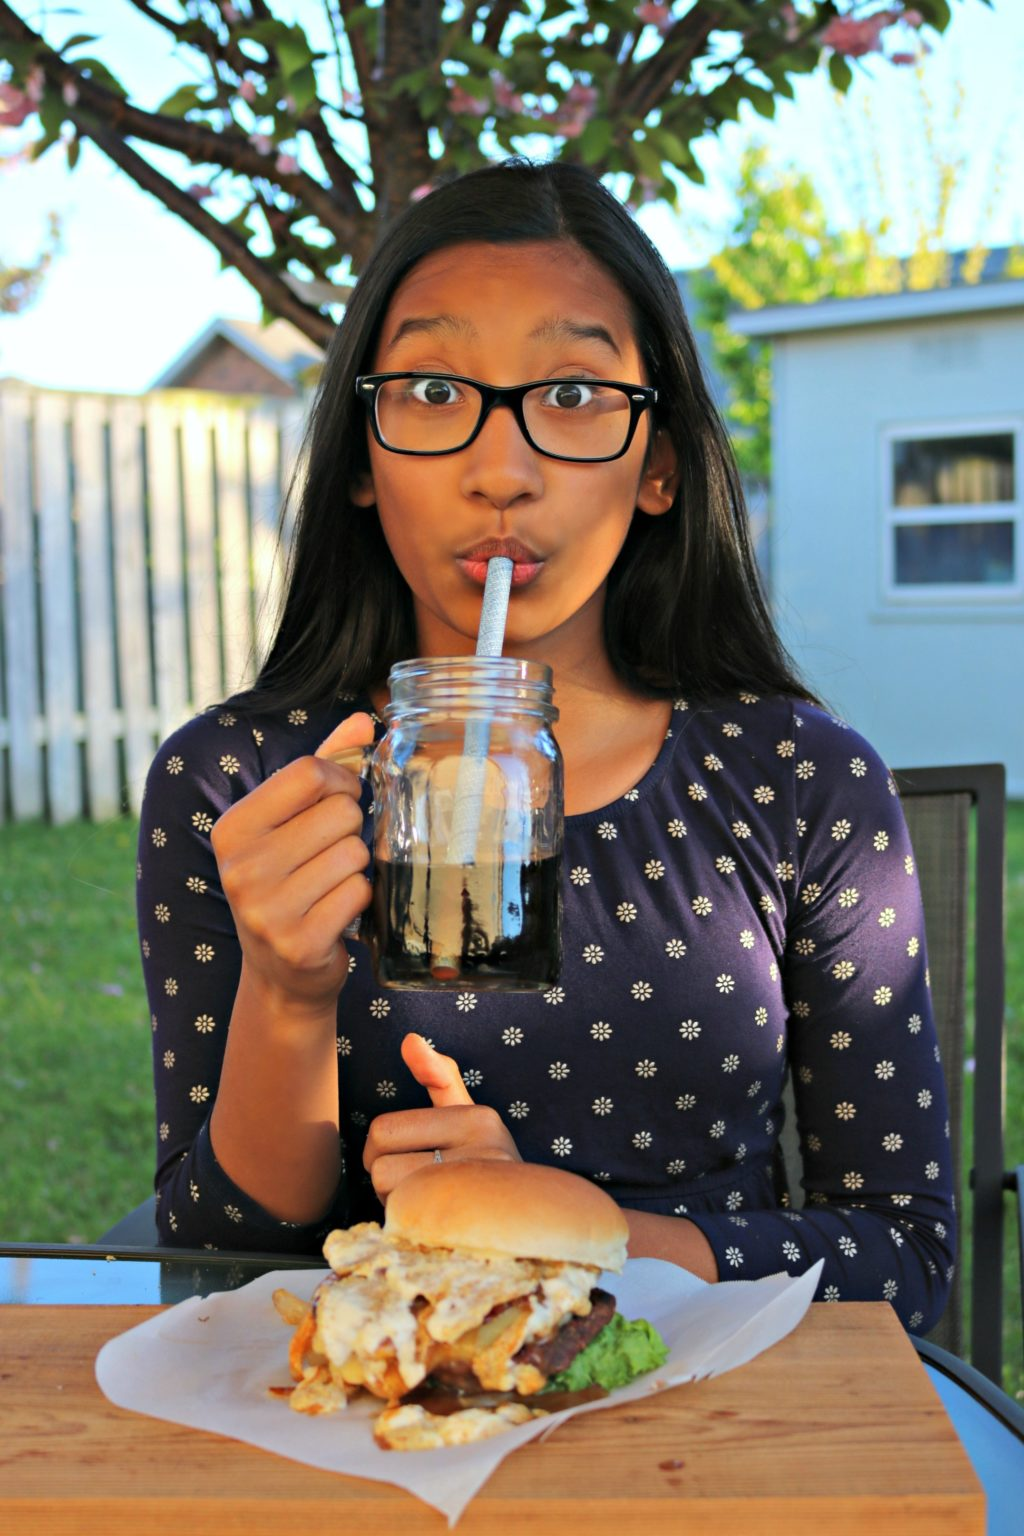 Gabby take a sip of her soda, her eyebrows are raised in shock at how good the burger is.